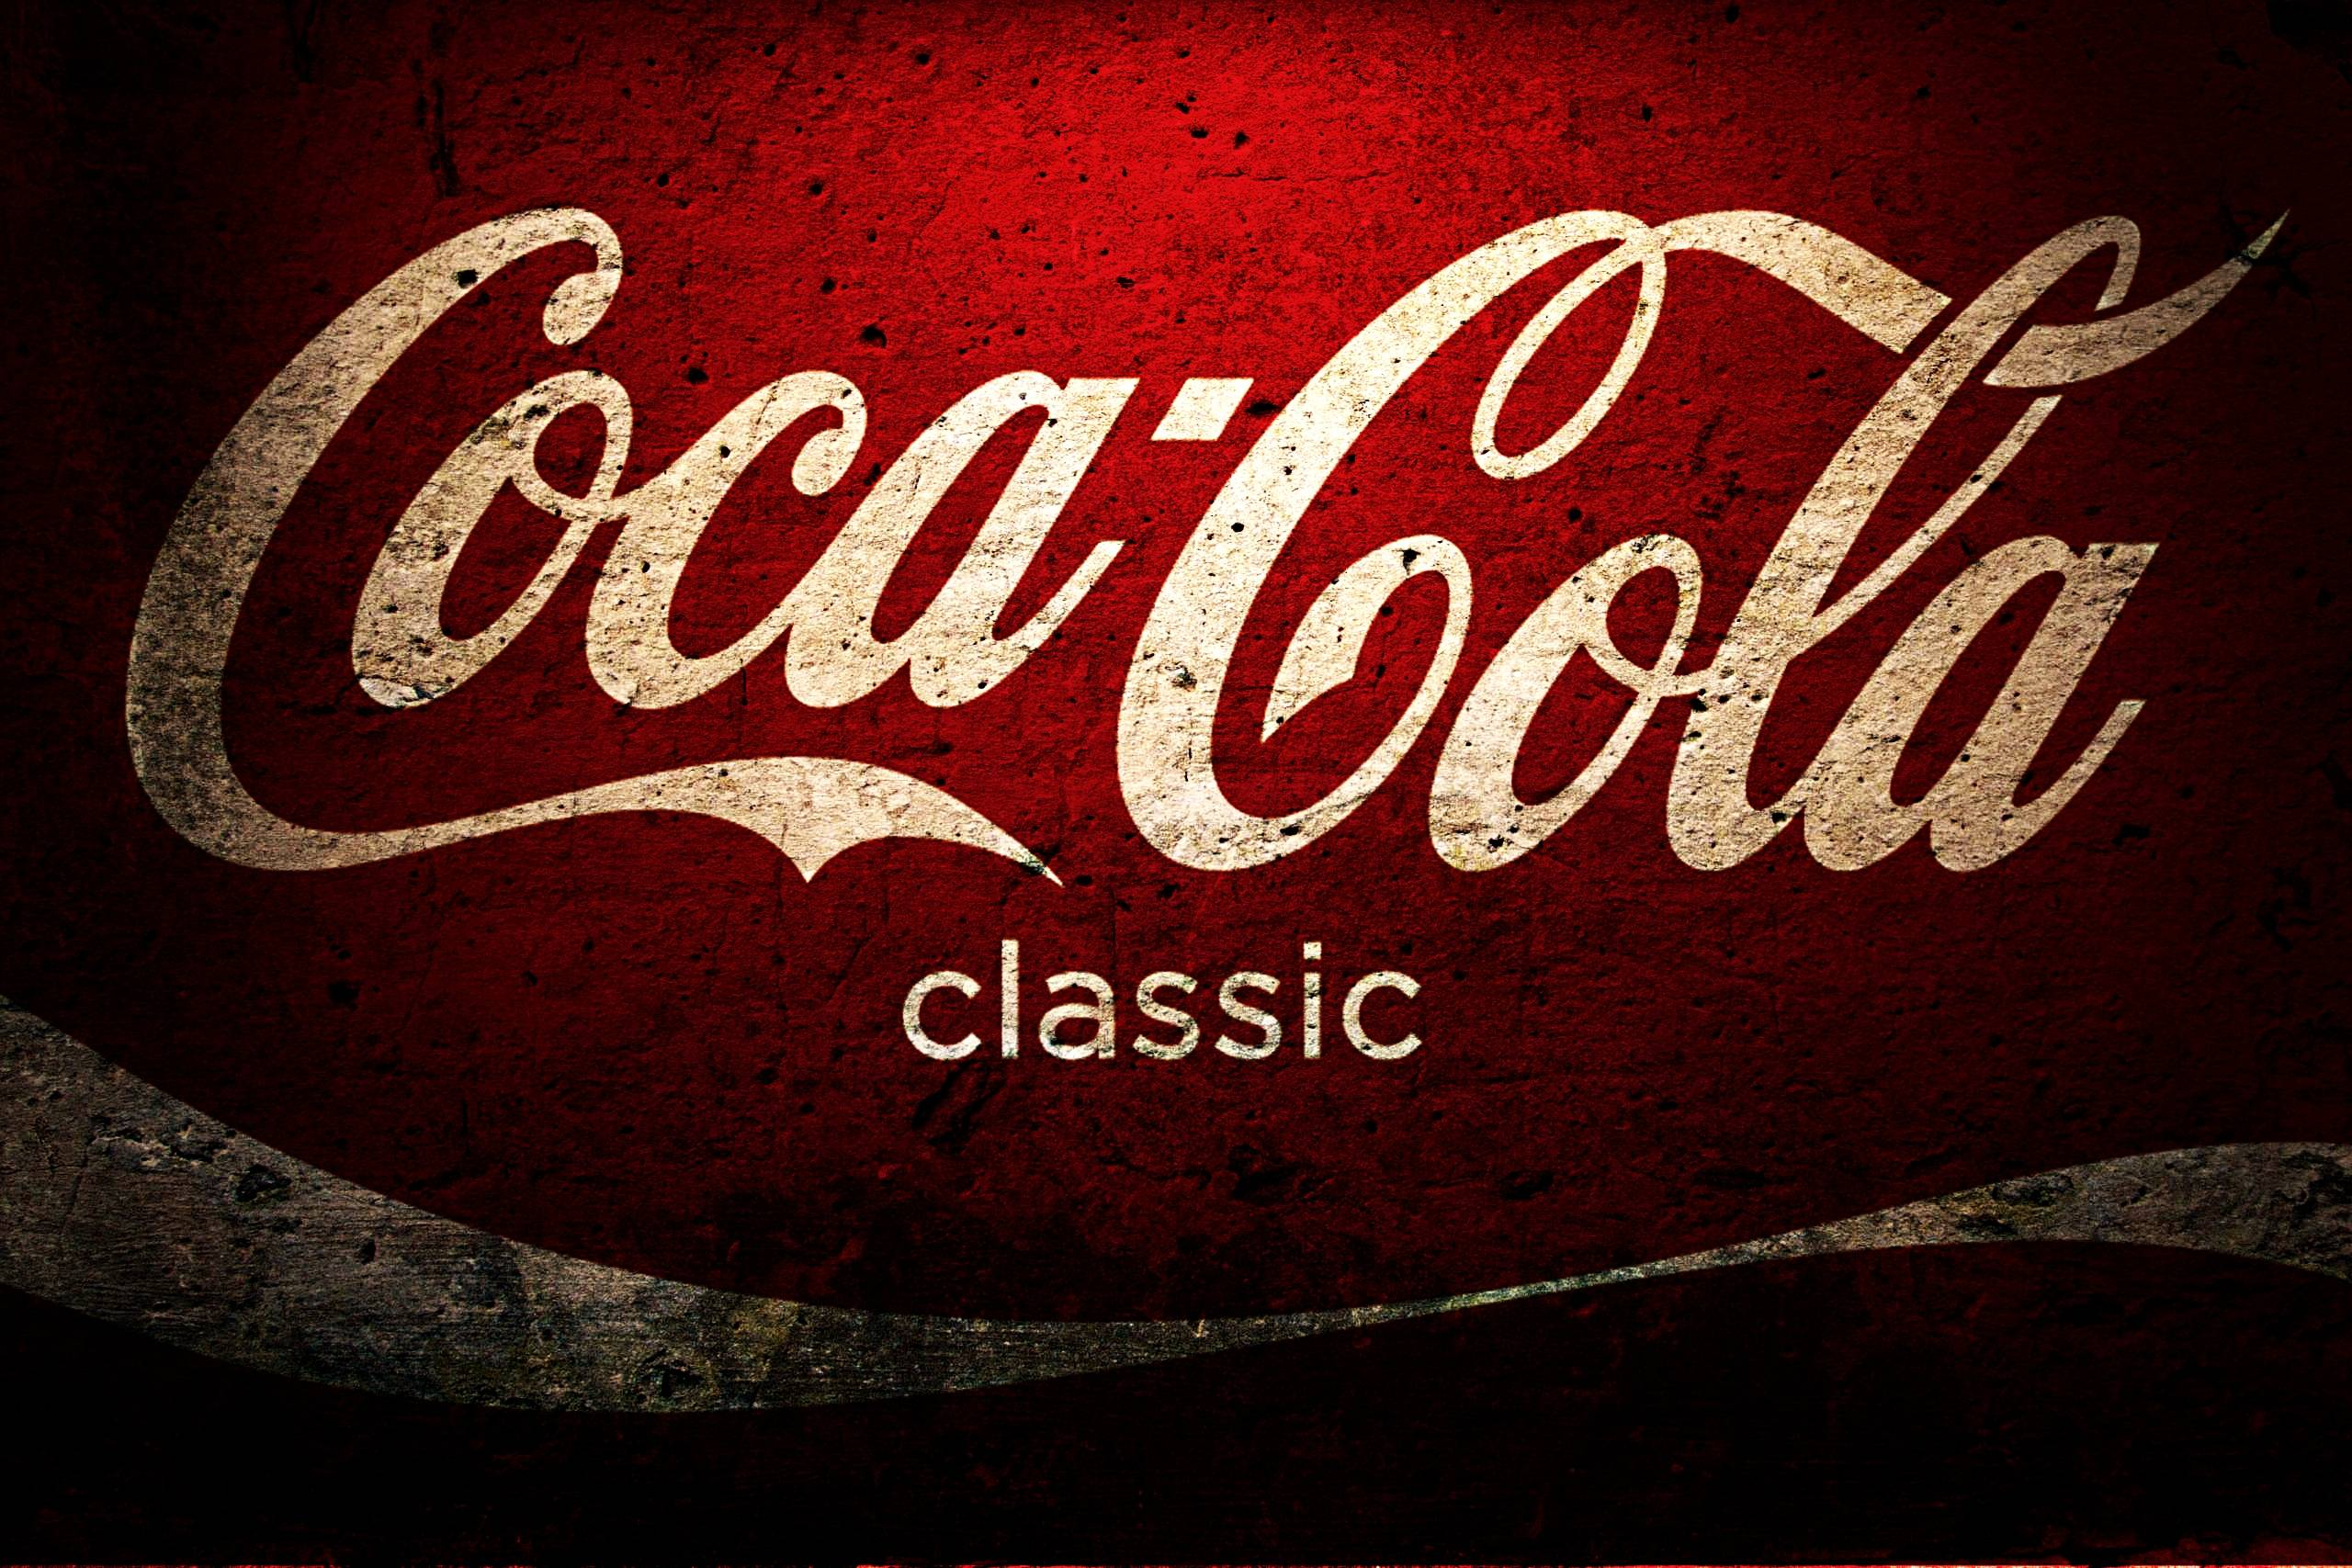 Wallpapers For Coca Cola Wallpaper Hd 2014